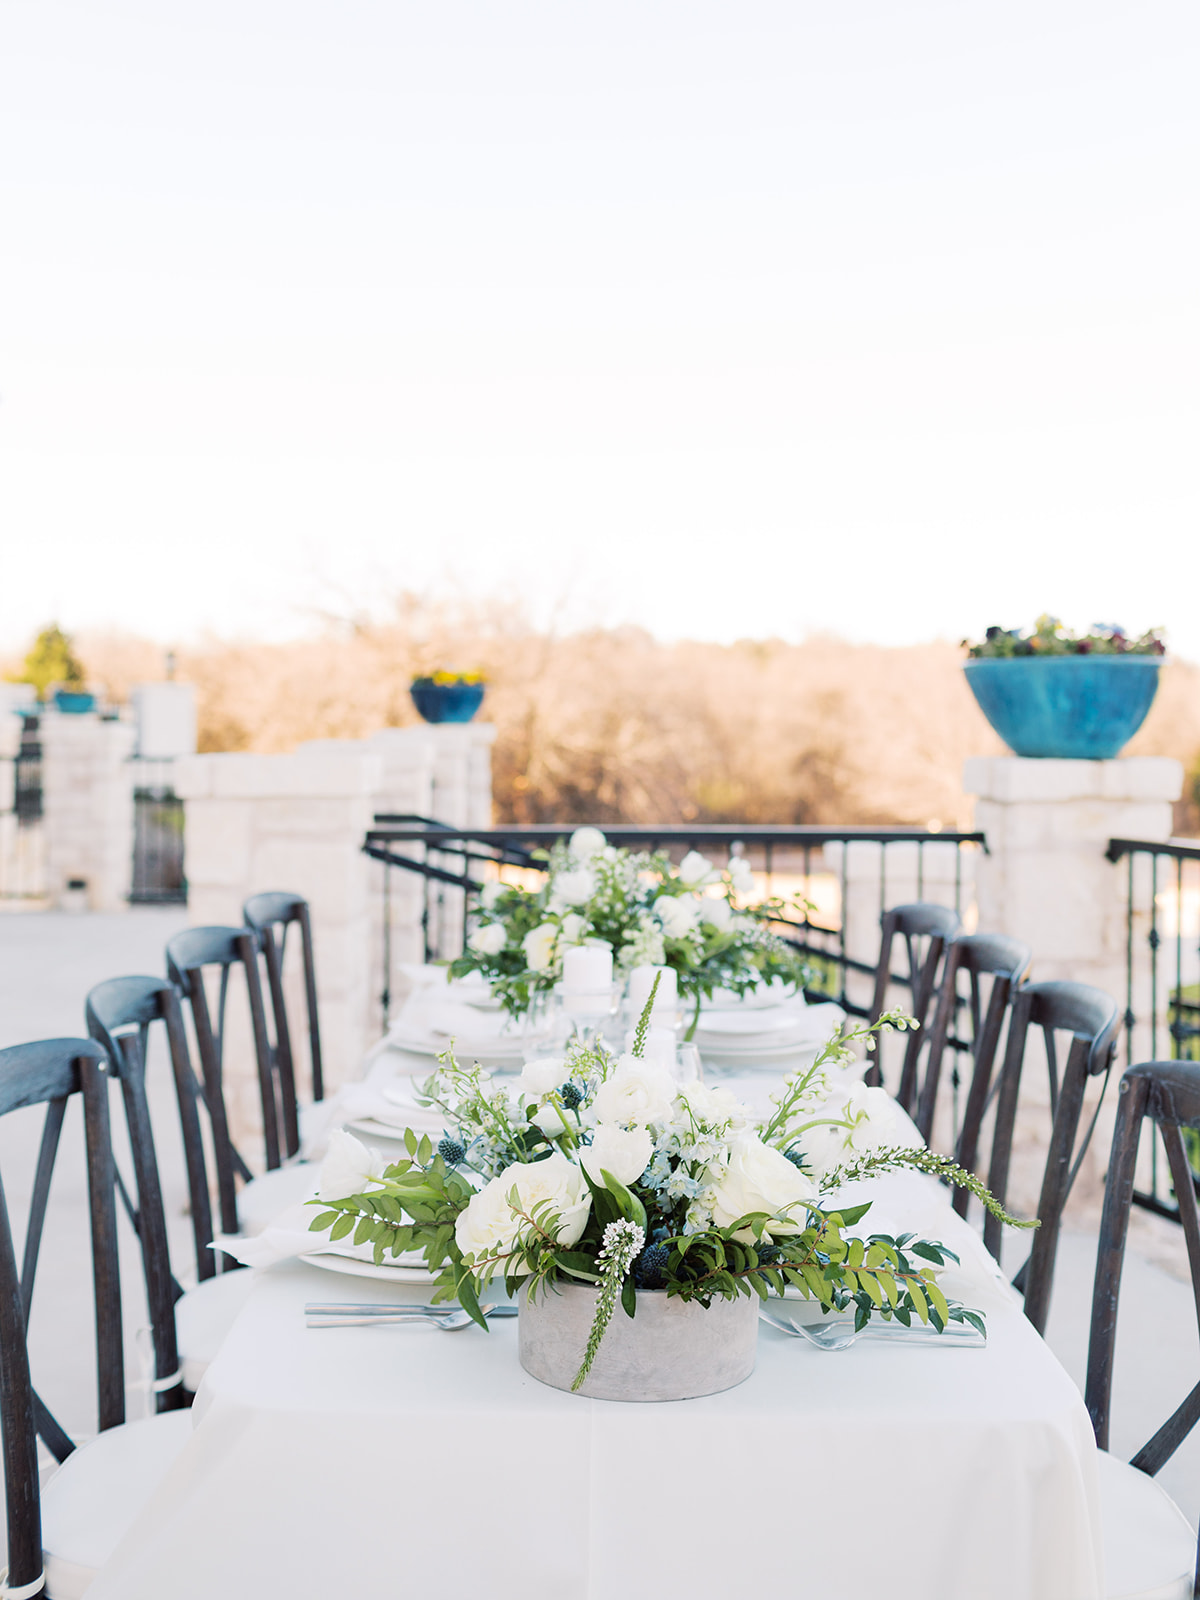 Outdoor wedding tablescape: Elopement vineyard wedding at Umbra Winery by Alexa Kay Events. See more wedding ideas at alexakayevents.com!